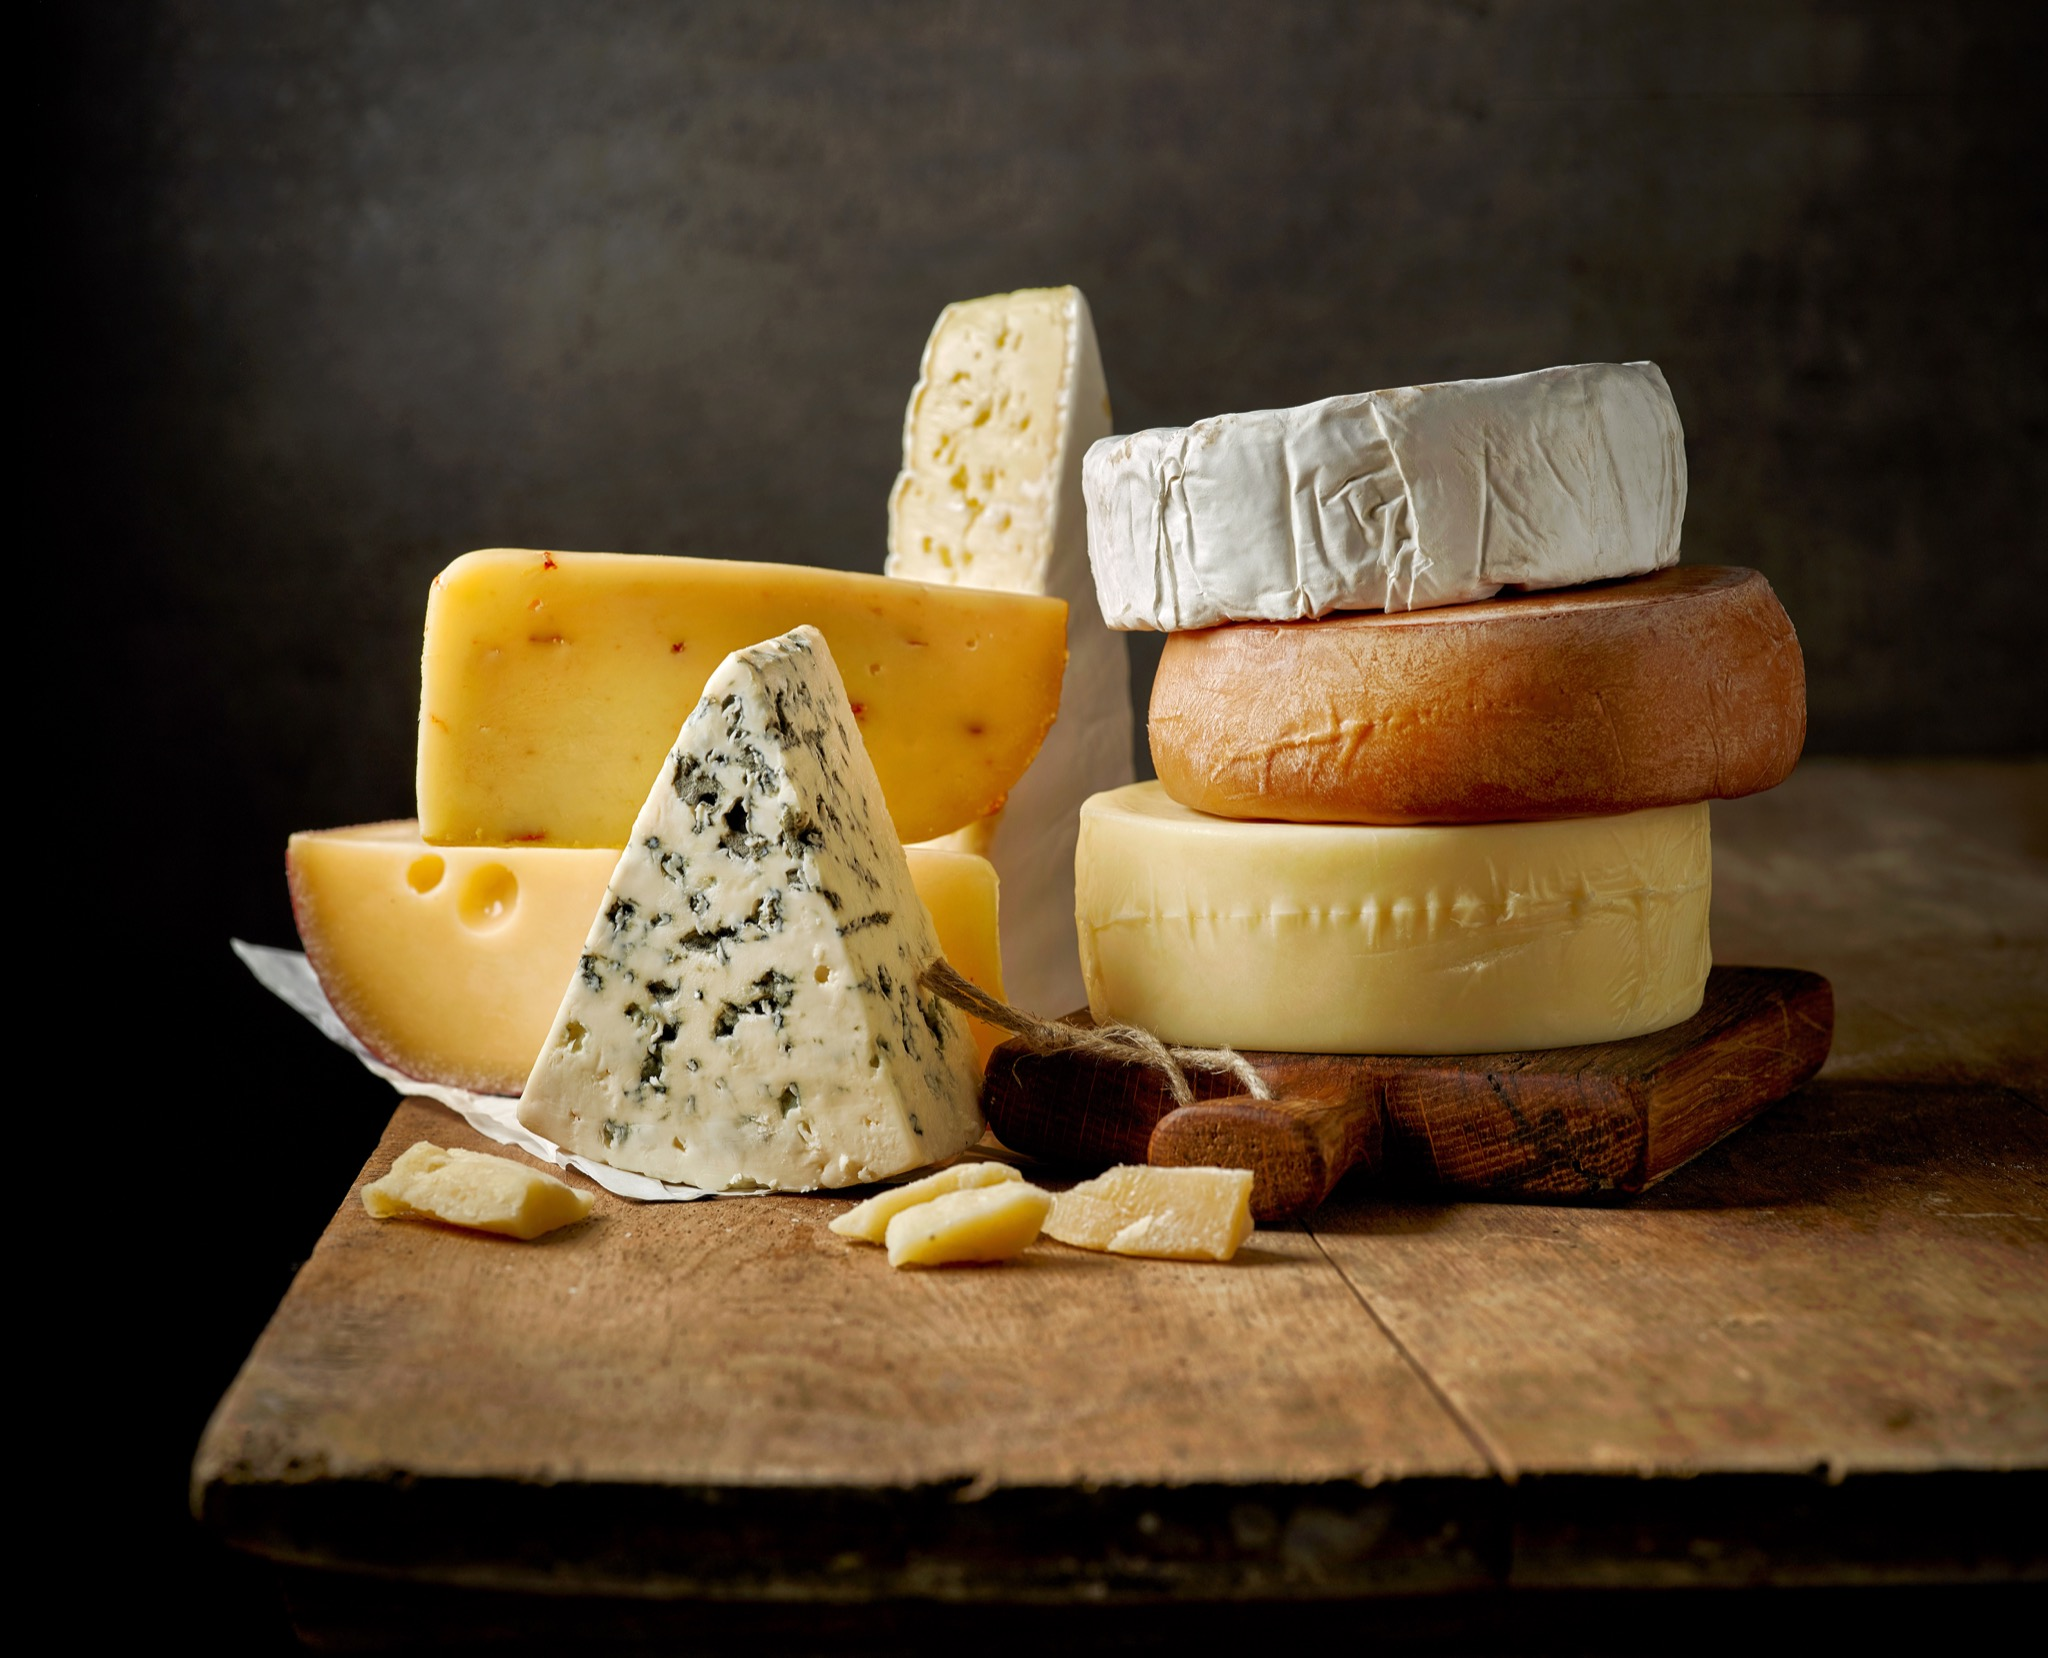 It's National Cheese Day: How Are You Celebrating?